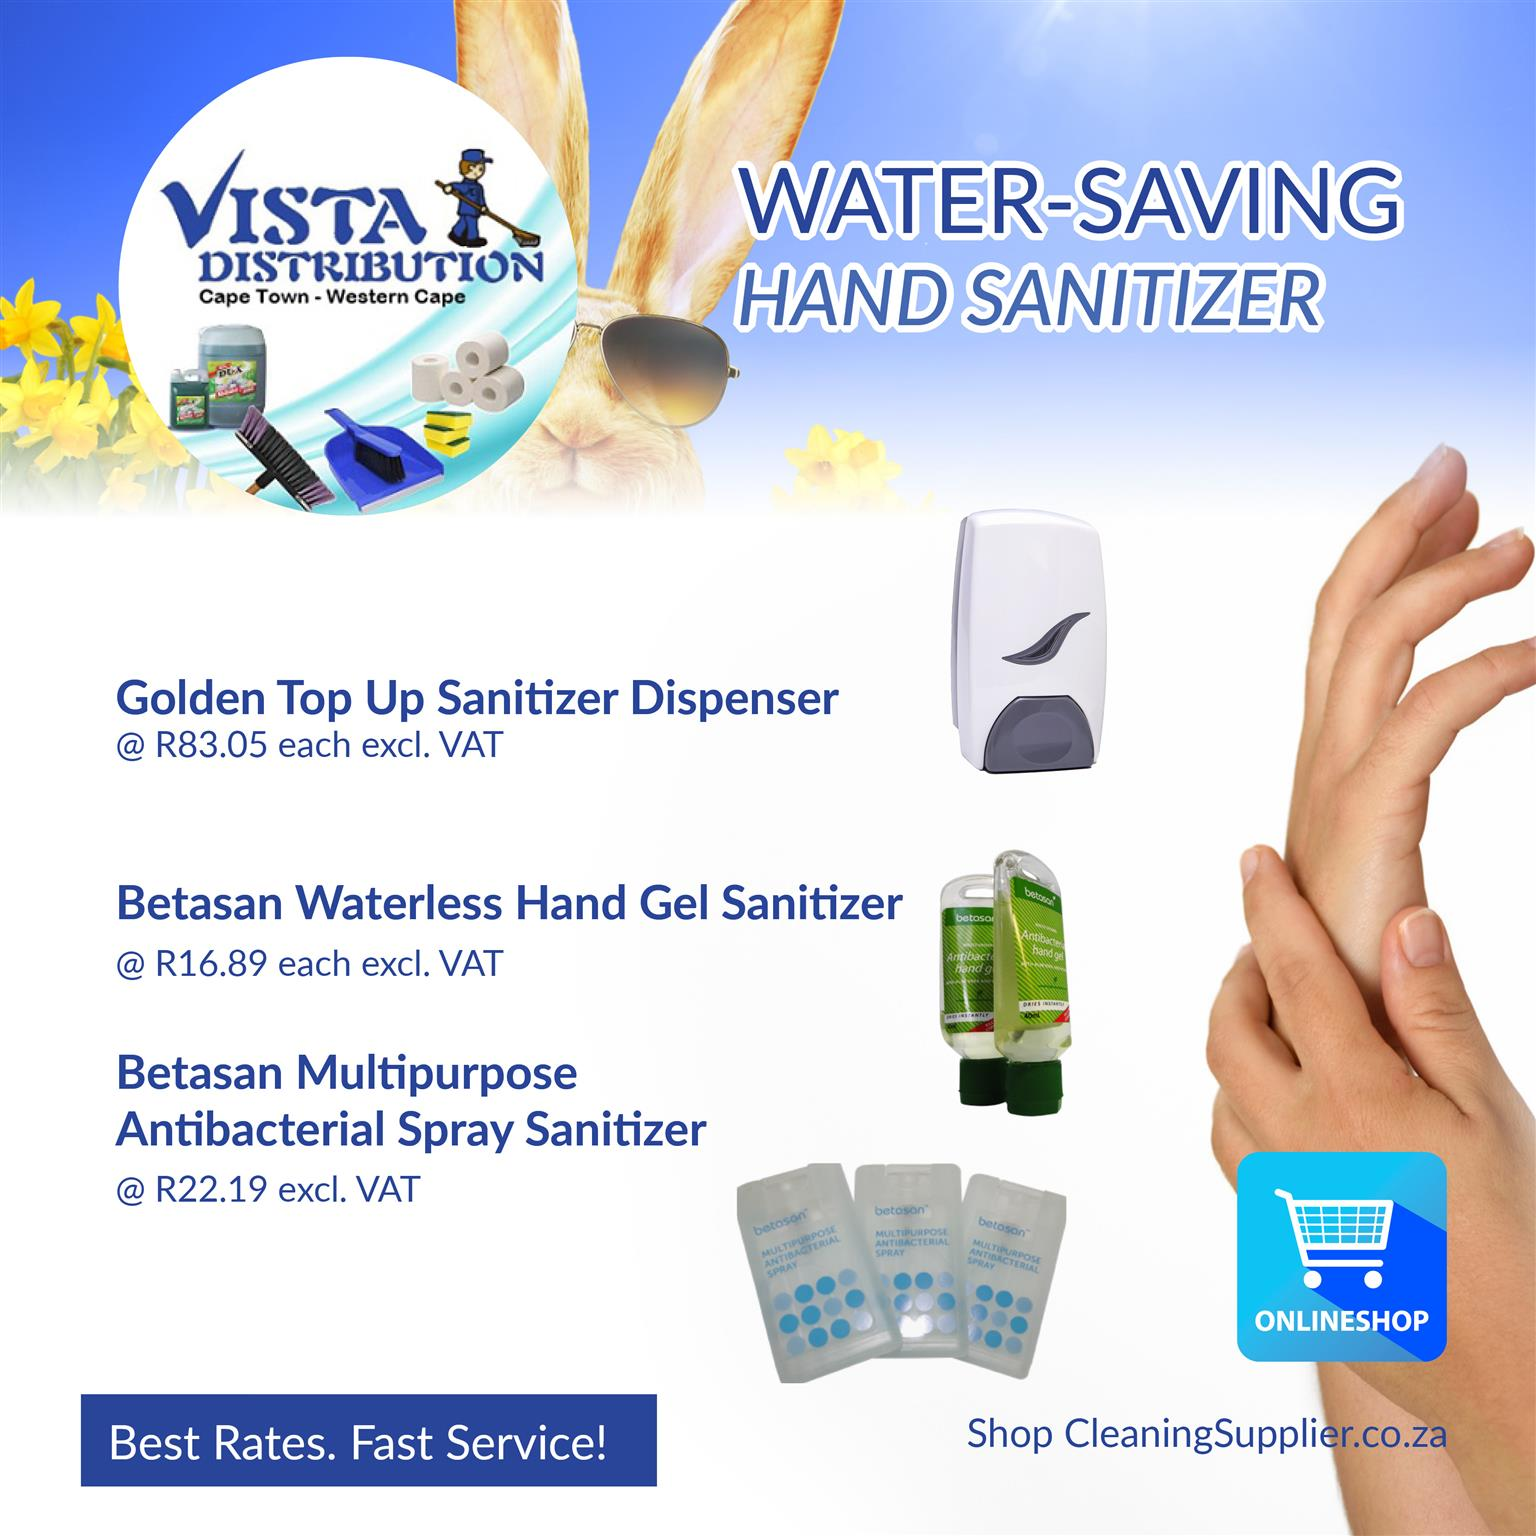 WATER-LESS Hygiene Solutions! Hand Sanitizers, no-flush toilet chemicals, and more!